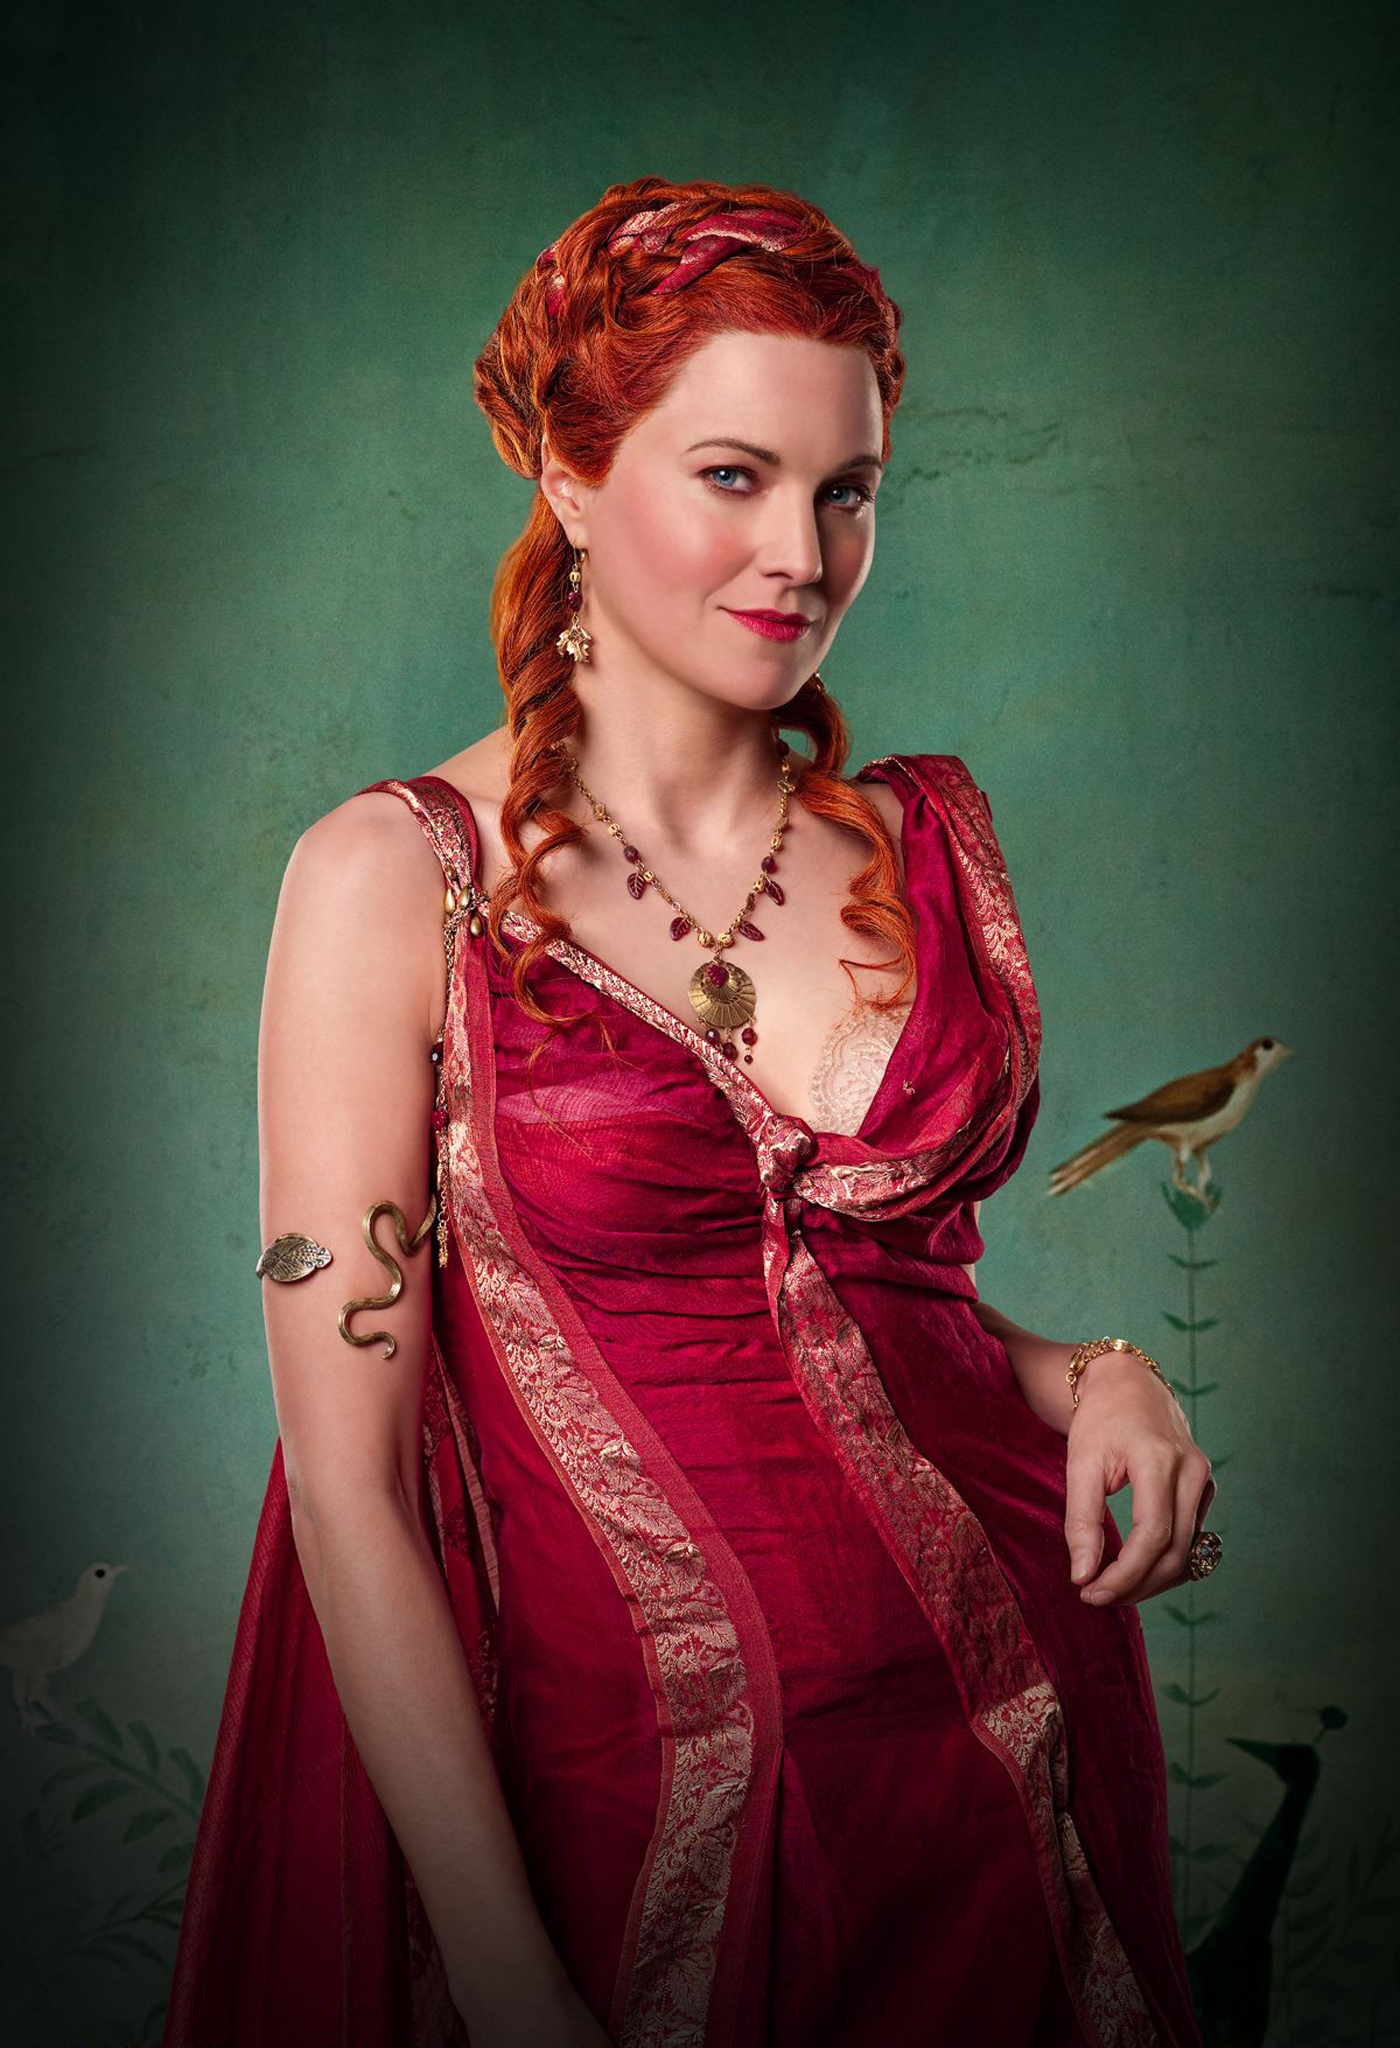 Lucretia - Spartacus: Blood & Sand Photo (16799779) - Fanpop